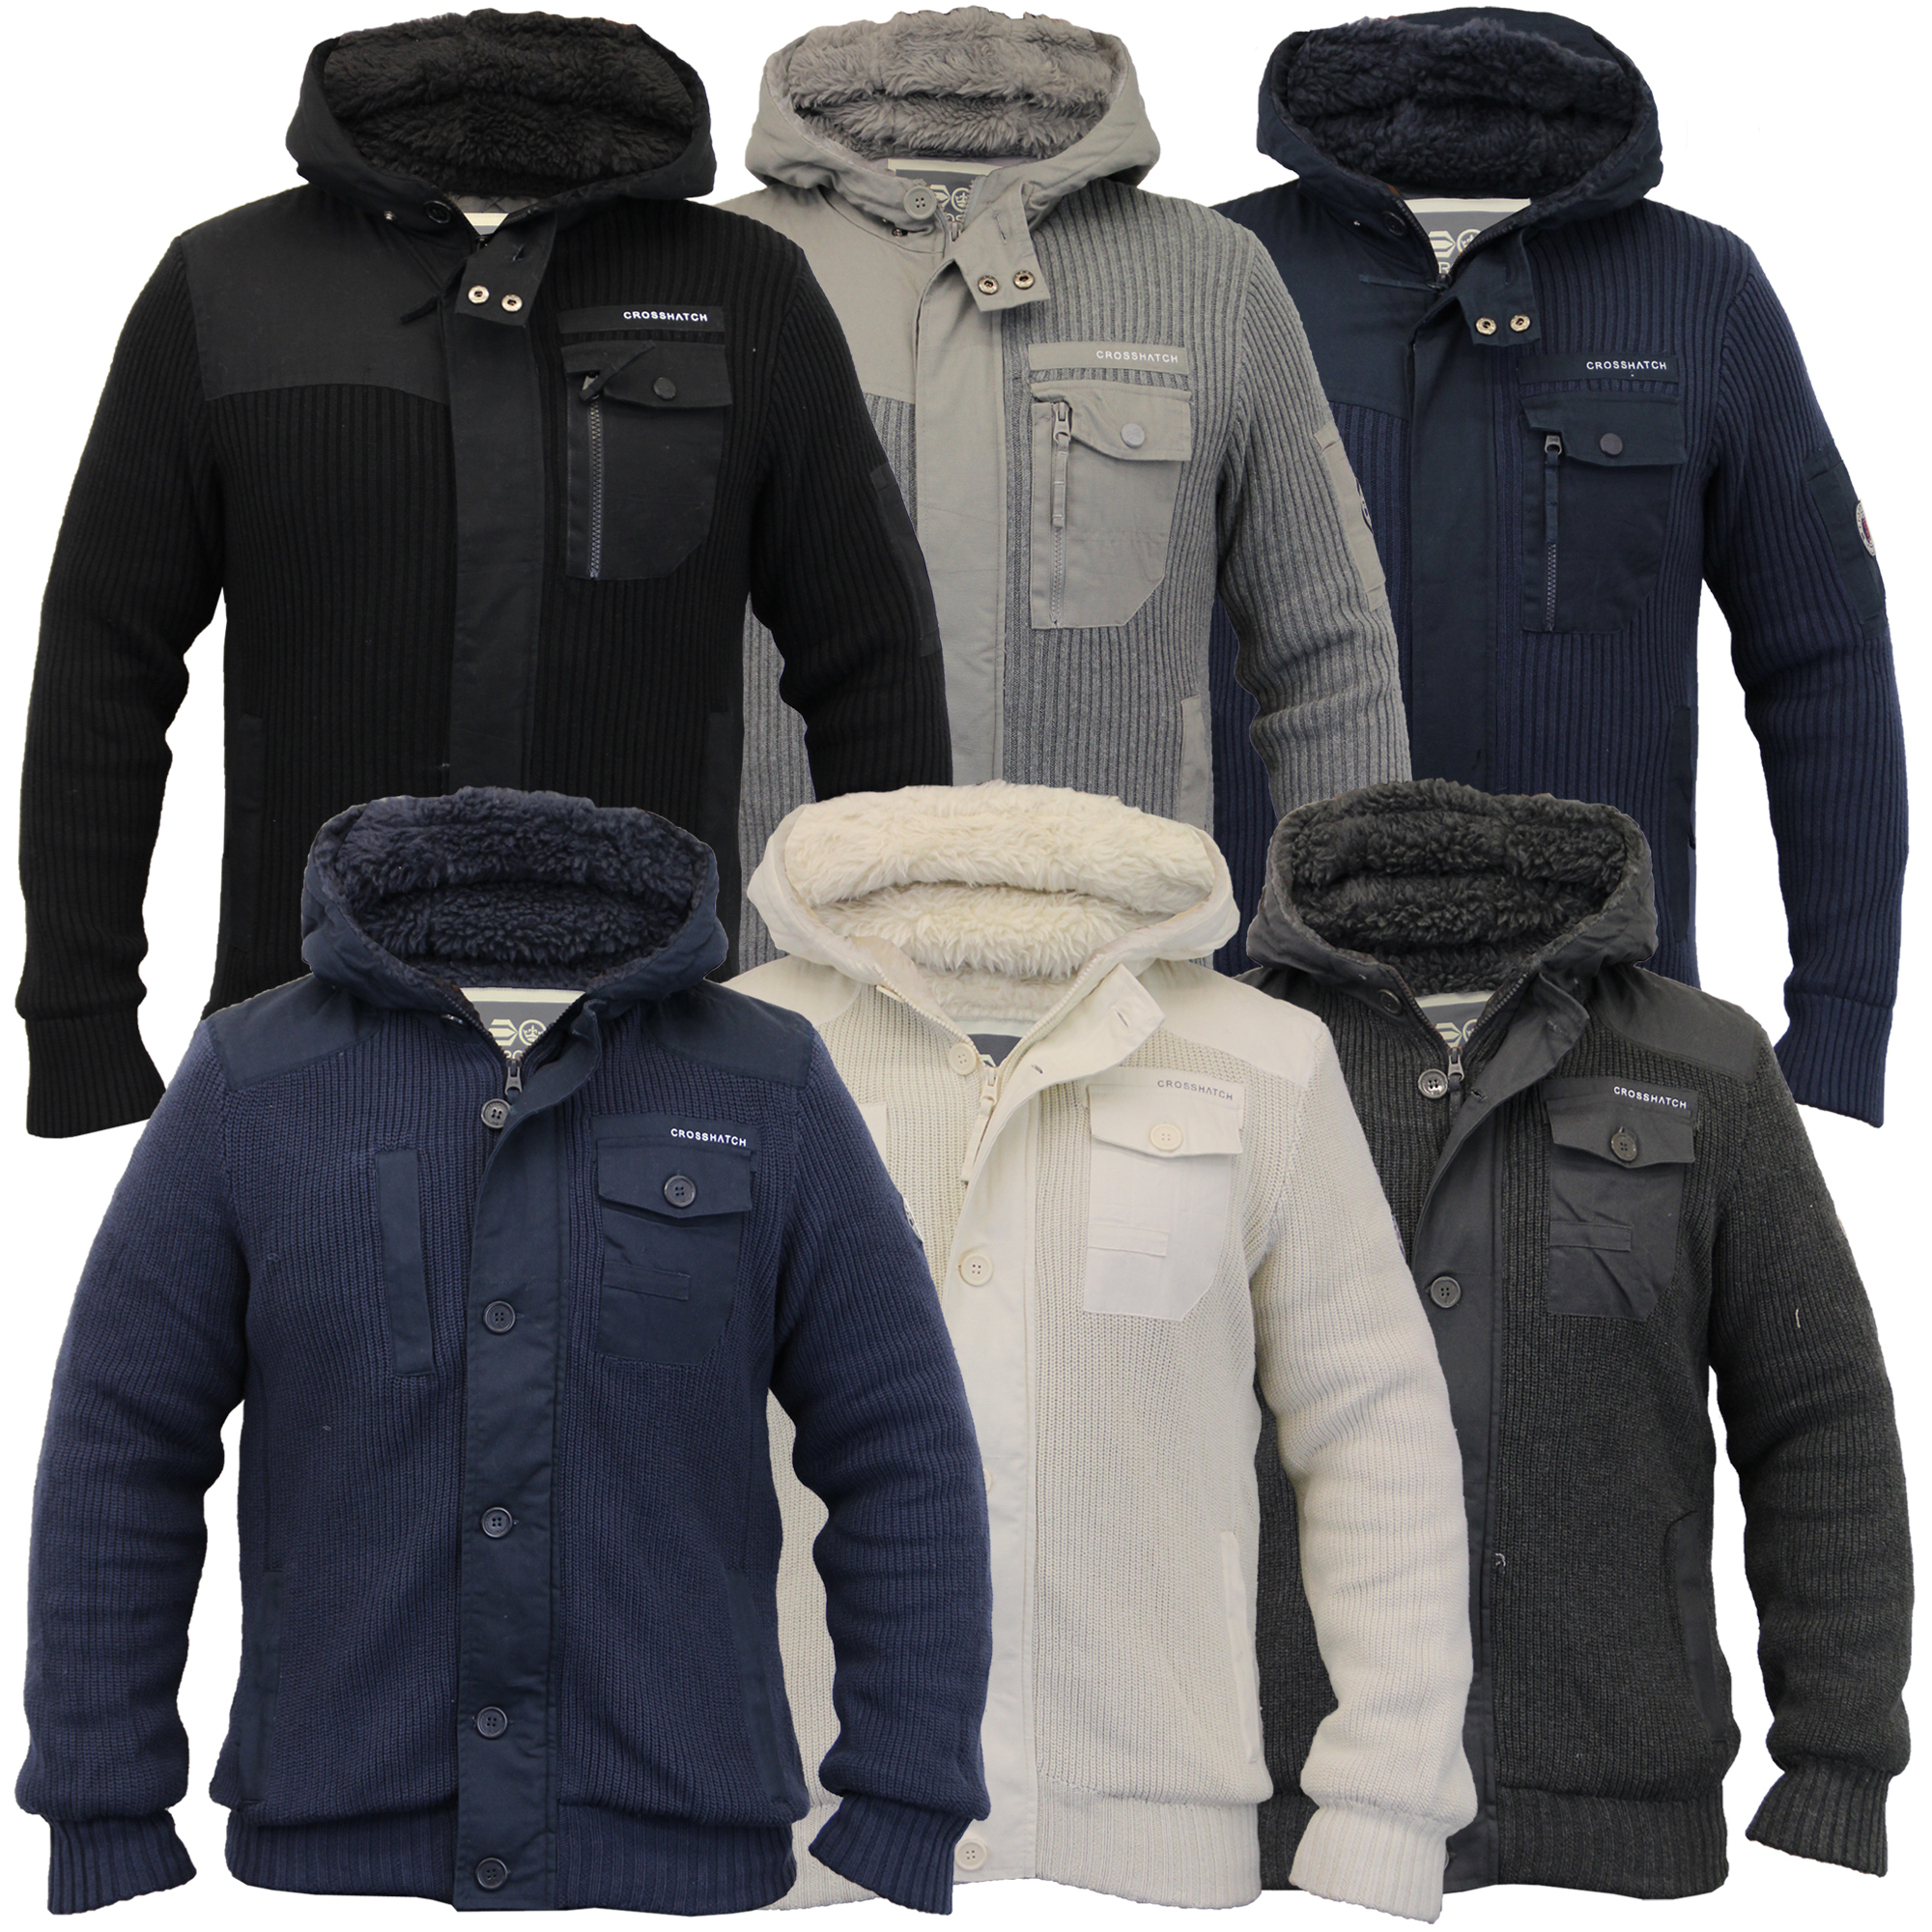 b1236568e89 Details about Mens Jacket Crosshatch Coat Knitted Hooded Top Sherpa Fleece  Padded Winter New